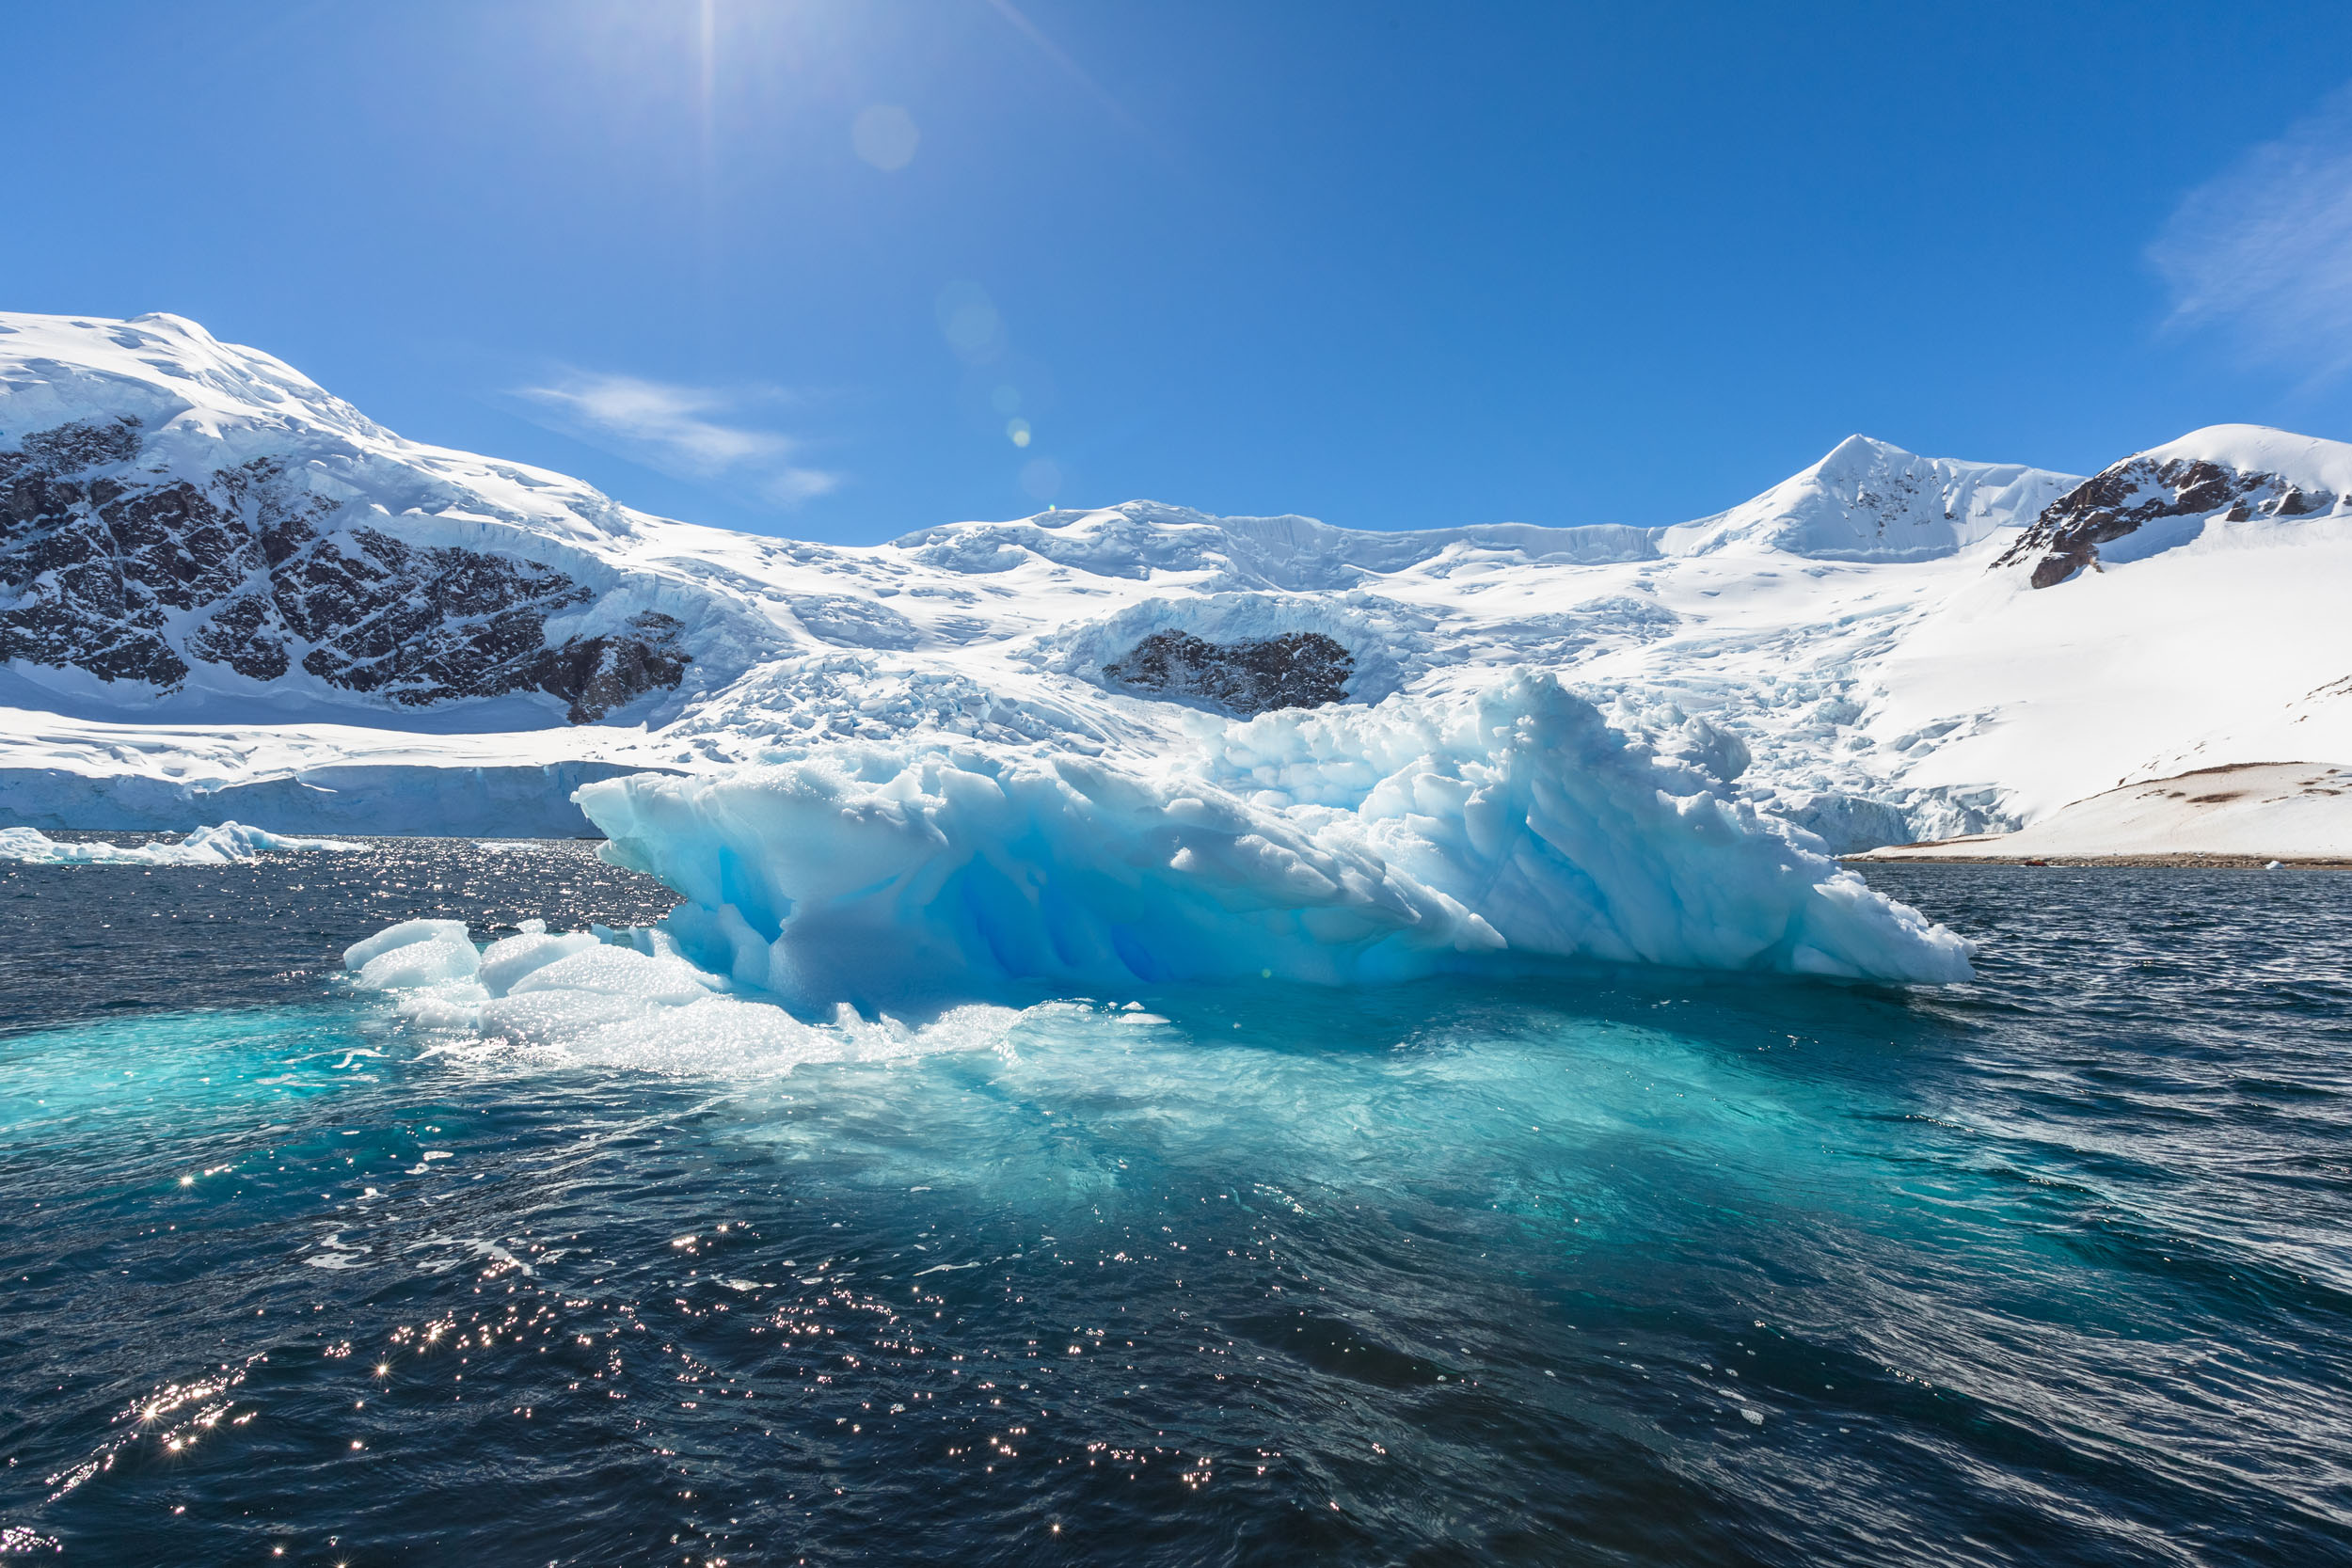 Changes in Arctic carbon emissions are often undetected